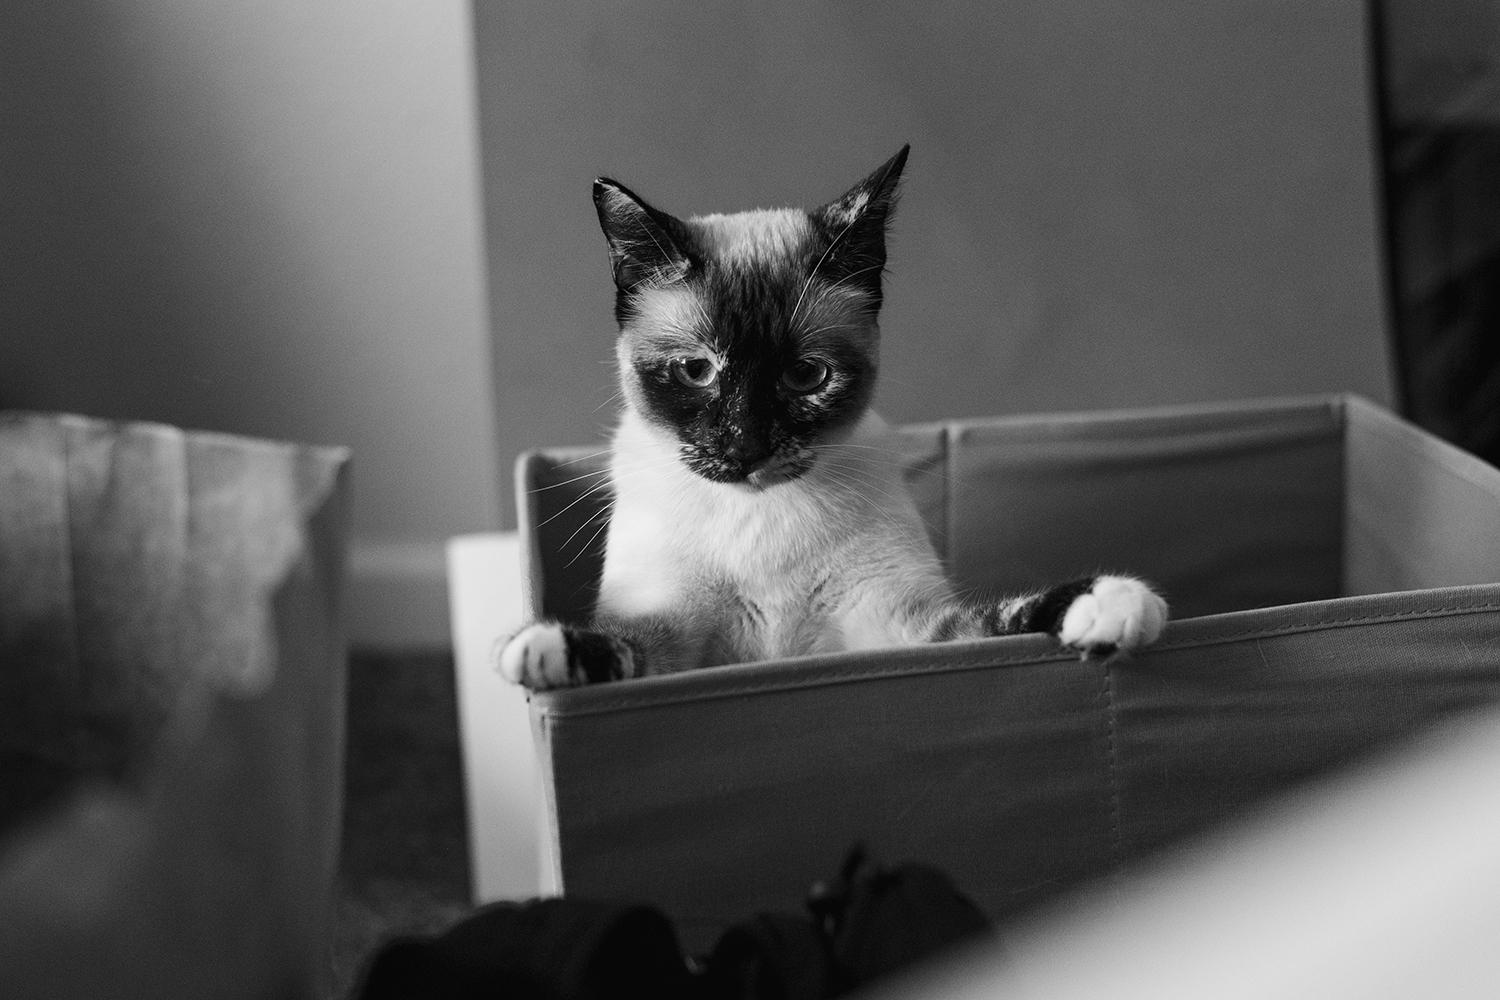 Cat in box black and white